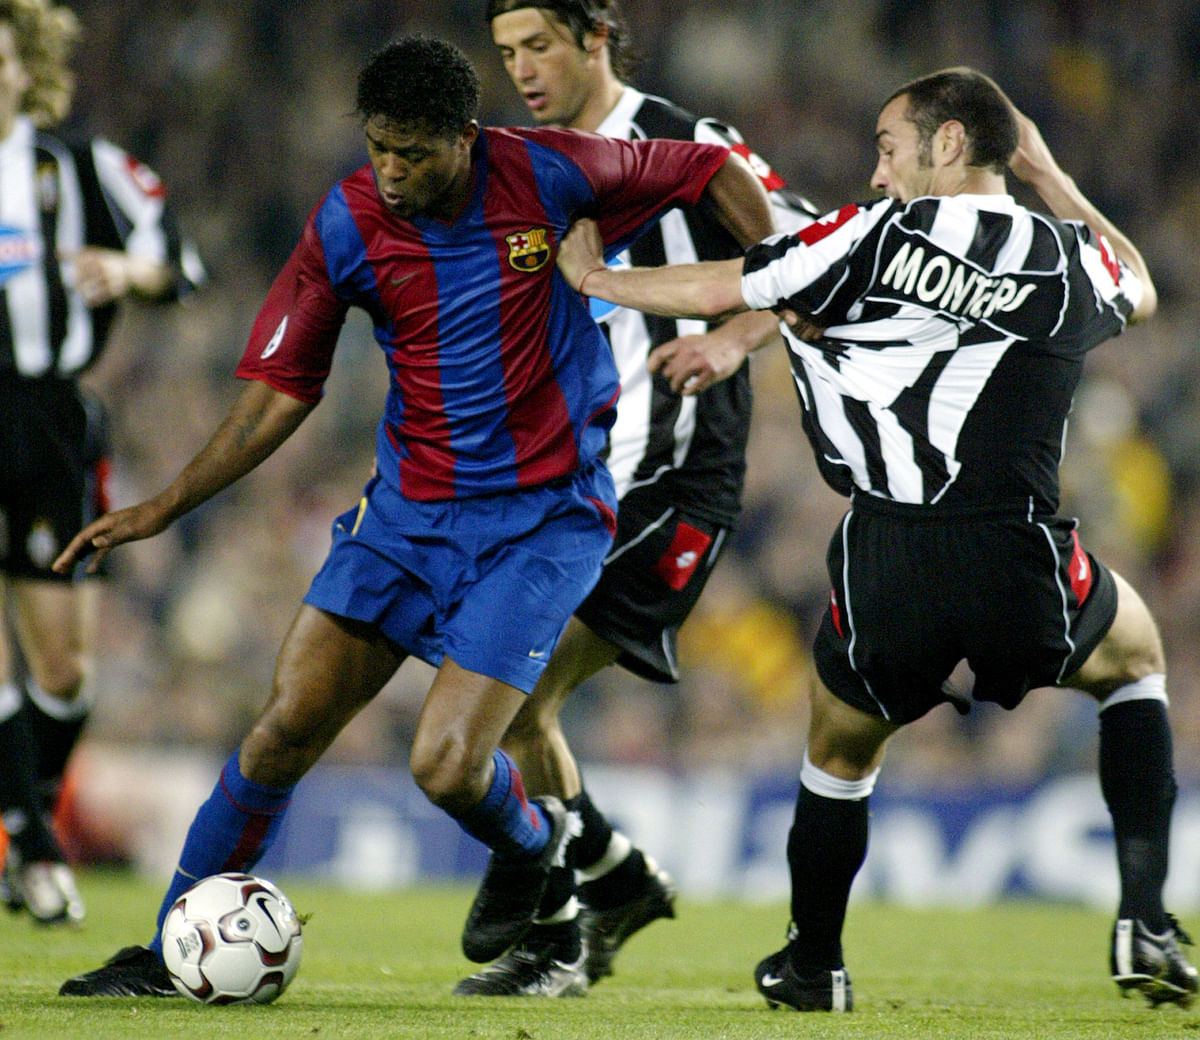 FC Barcelona's Dutch player Patrick Kluivert with Juventus defender Paolo Montero during their Champions League quarter-final second round match  in Barcelona,April 22, 2003. (Photo: Reuters)